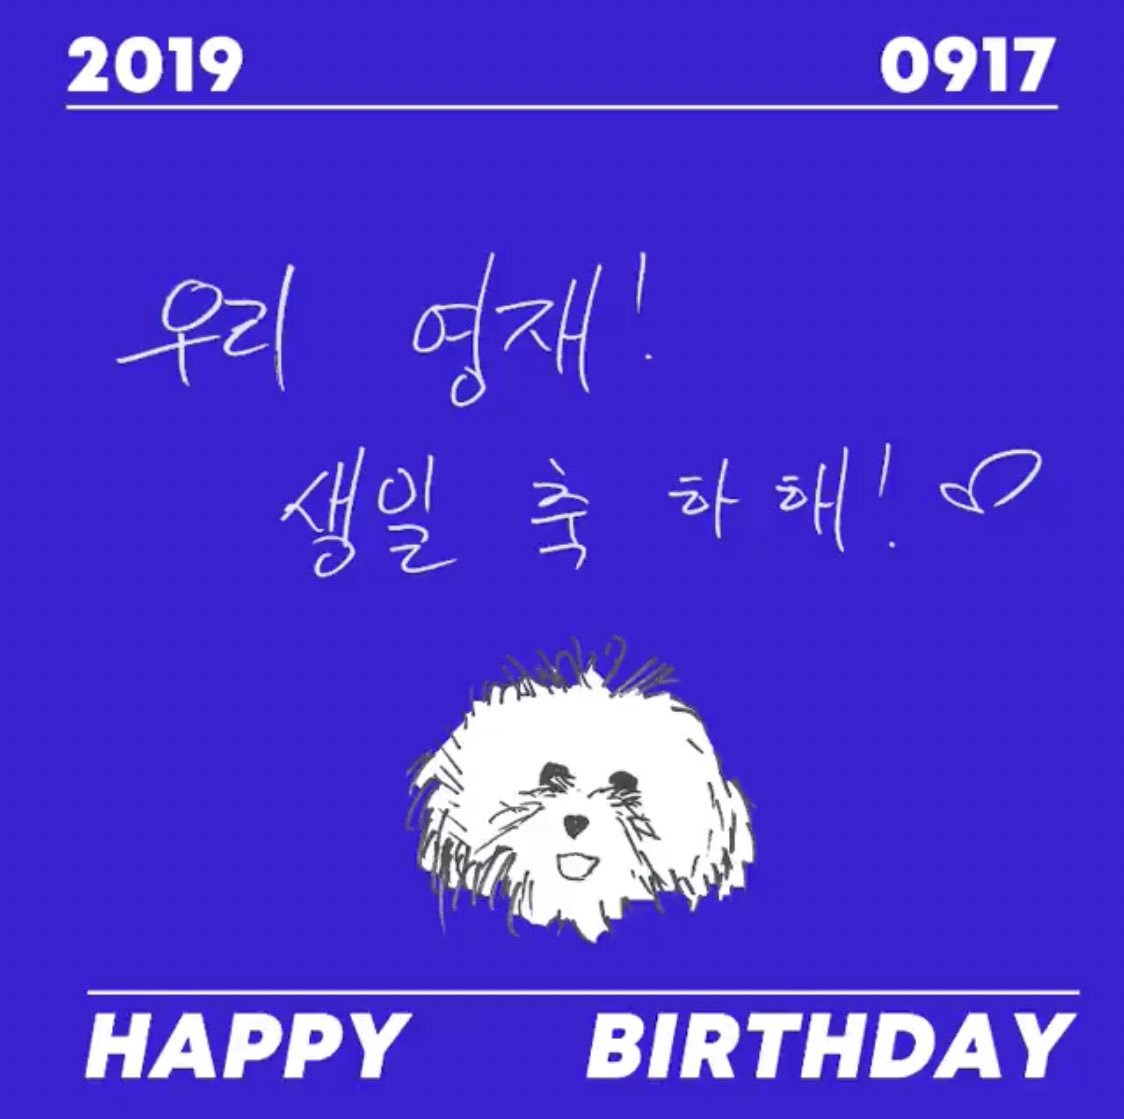 "[T] 190917 Mark's birthday message to Youngjae   ""Our Youngjae! Happy birthday! ♡""  #MarkTuan #마크 #段宜恩 @mtuan93  #OurGravityYoungjaeDay #혼자_두지않을게_영재_생일축하해 #GOT7  @GOT7Official #갓세븐 <br>http://pic.twitter.com/s3JRBxXhDQ"